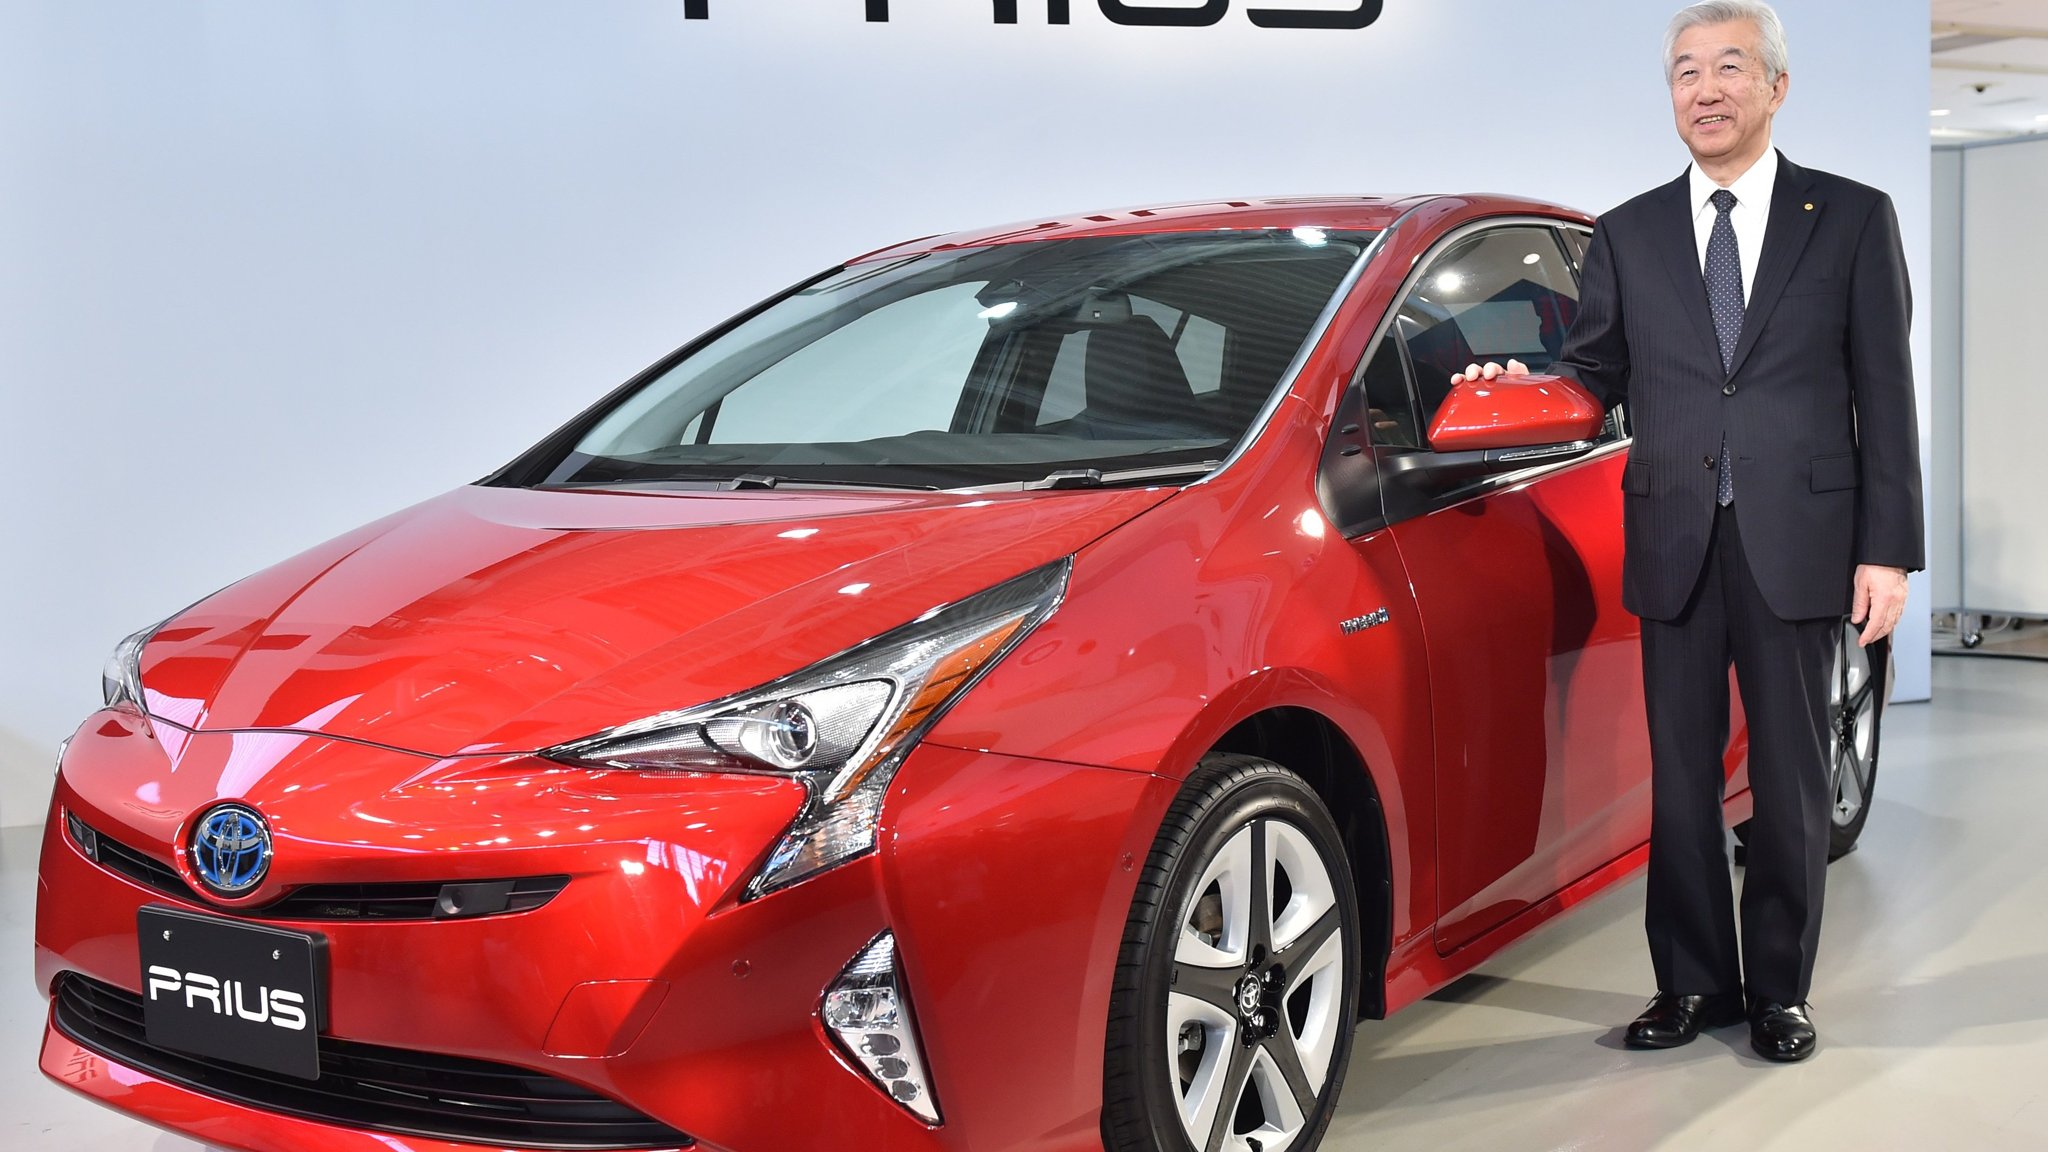 Toyota faces uphill challenge as new generation Prius hits